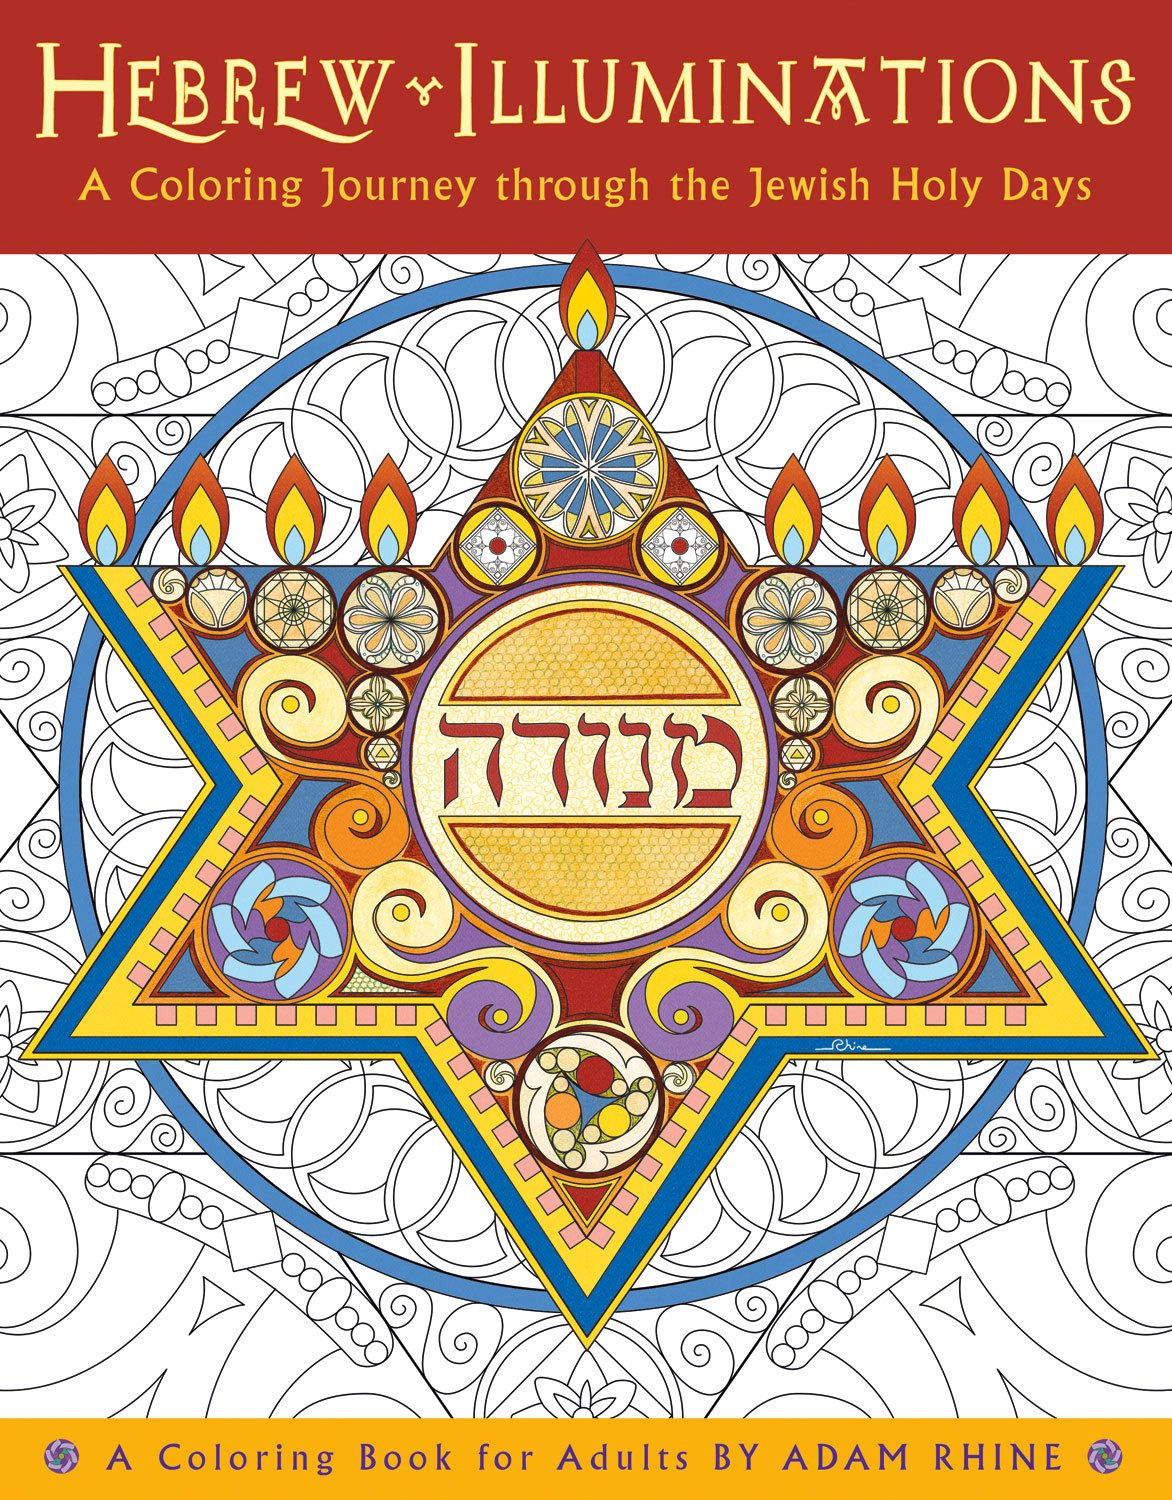 Lotus designs coloring book - Hebrew Illuminations A Coloring Journey Through The Jewish Holy Days Adam Rhine Amber Lotus Publishing 9781631362392 Amazon Com Books